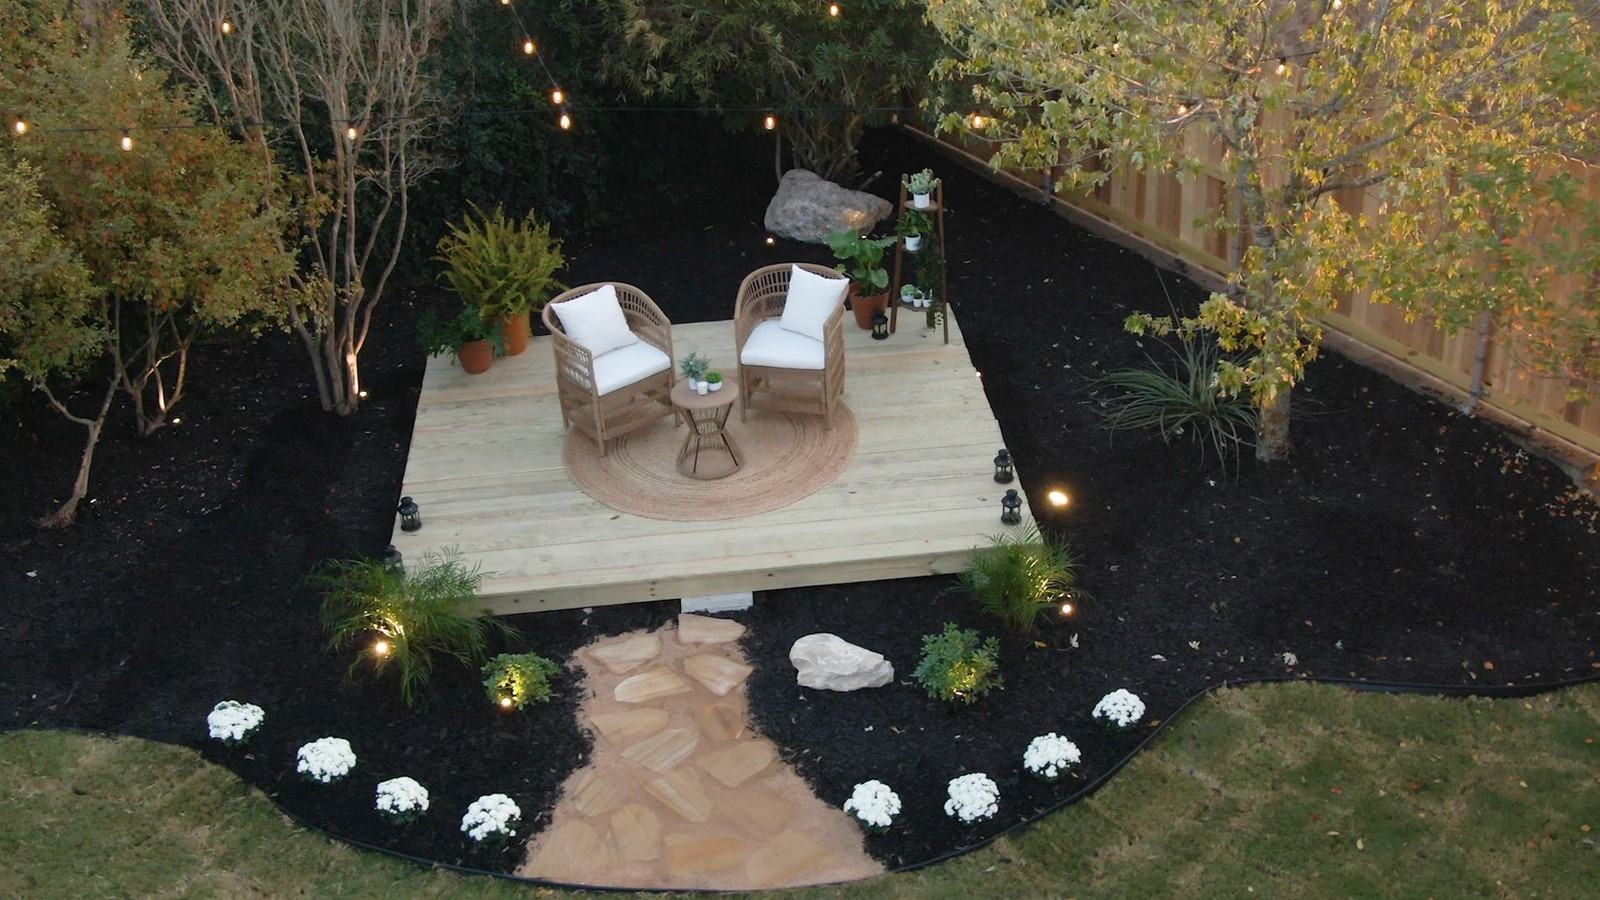 50 Ideas and Tips for Landscaping - Sheet50